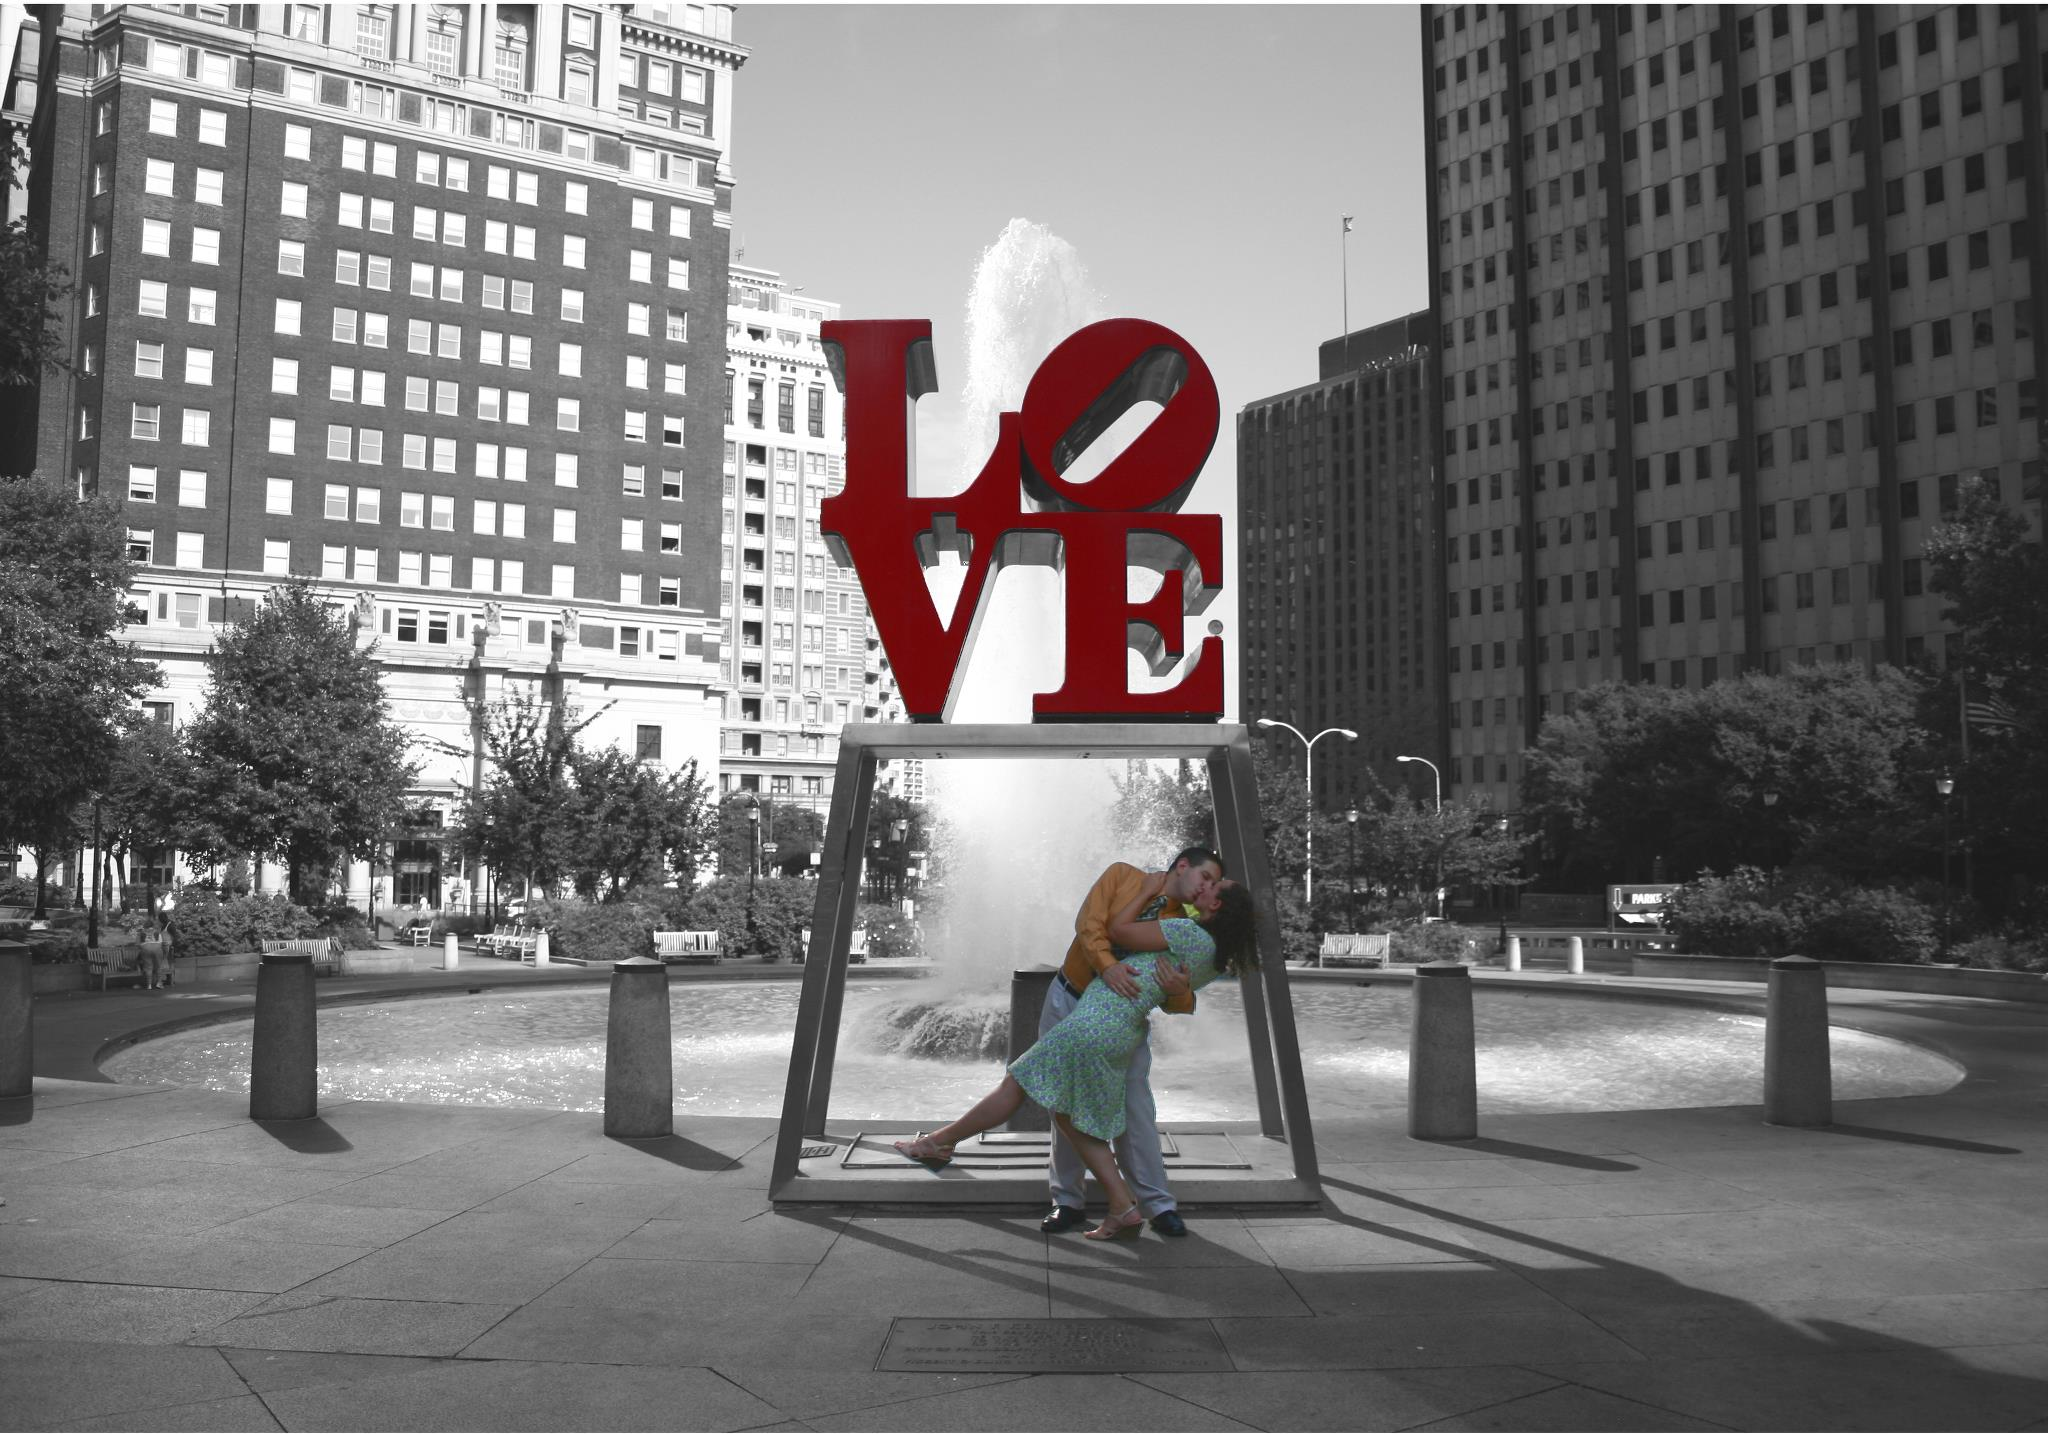 Carrie and Steven Silver got their engagement photos taken at the LOVE statue